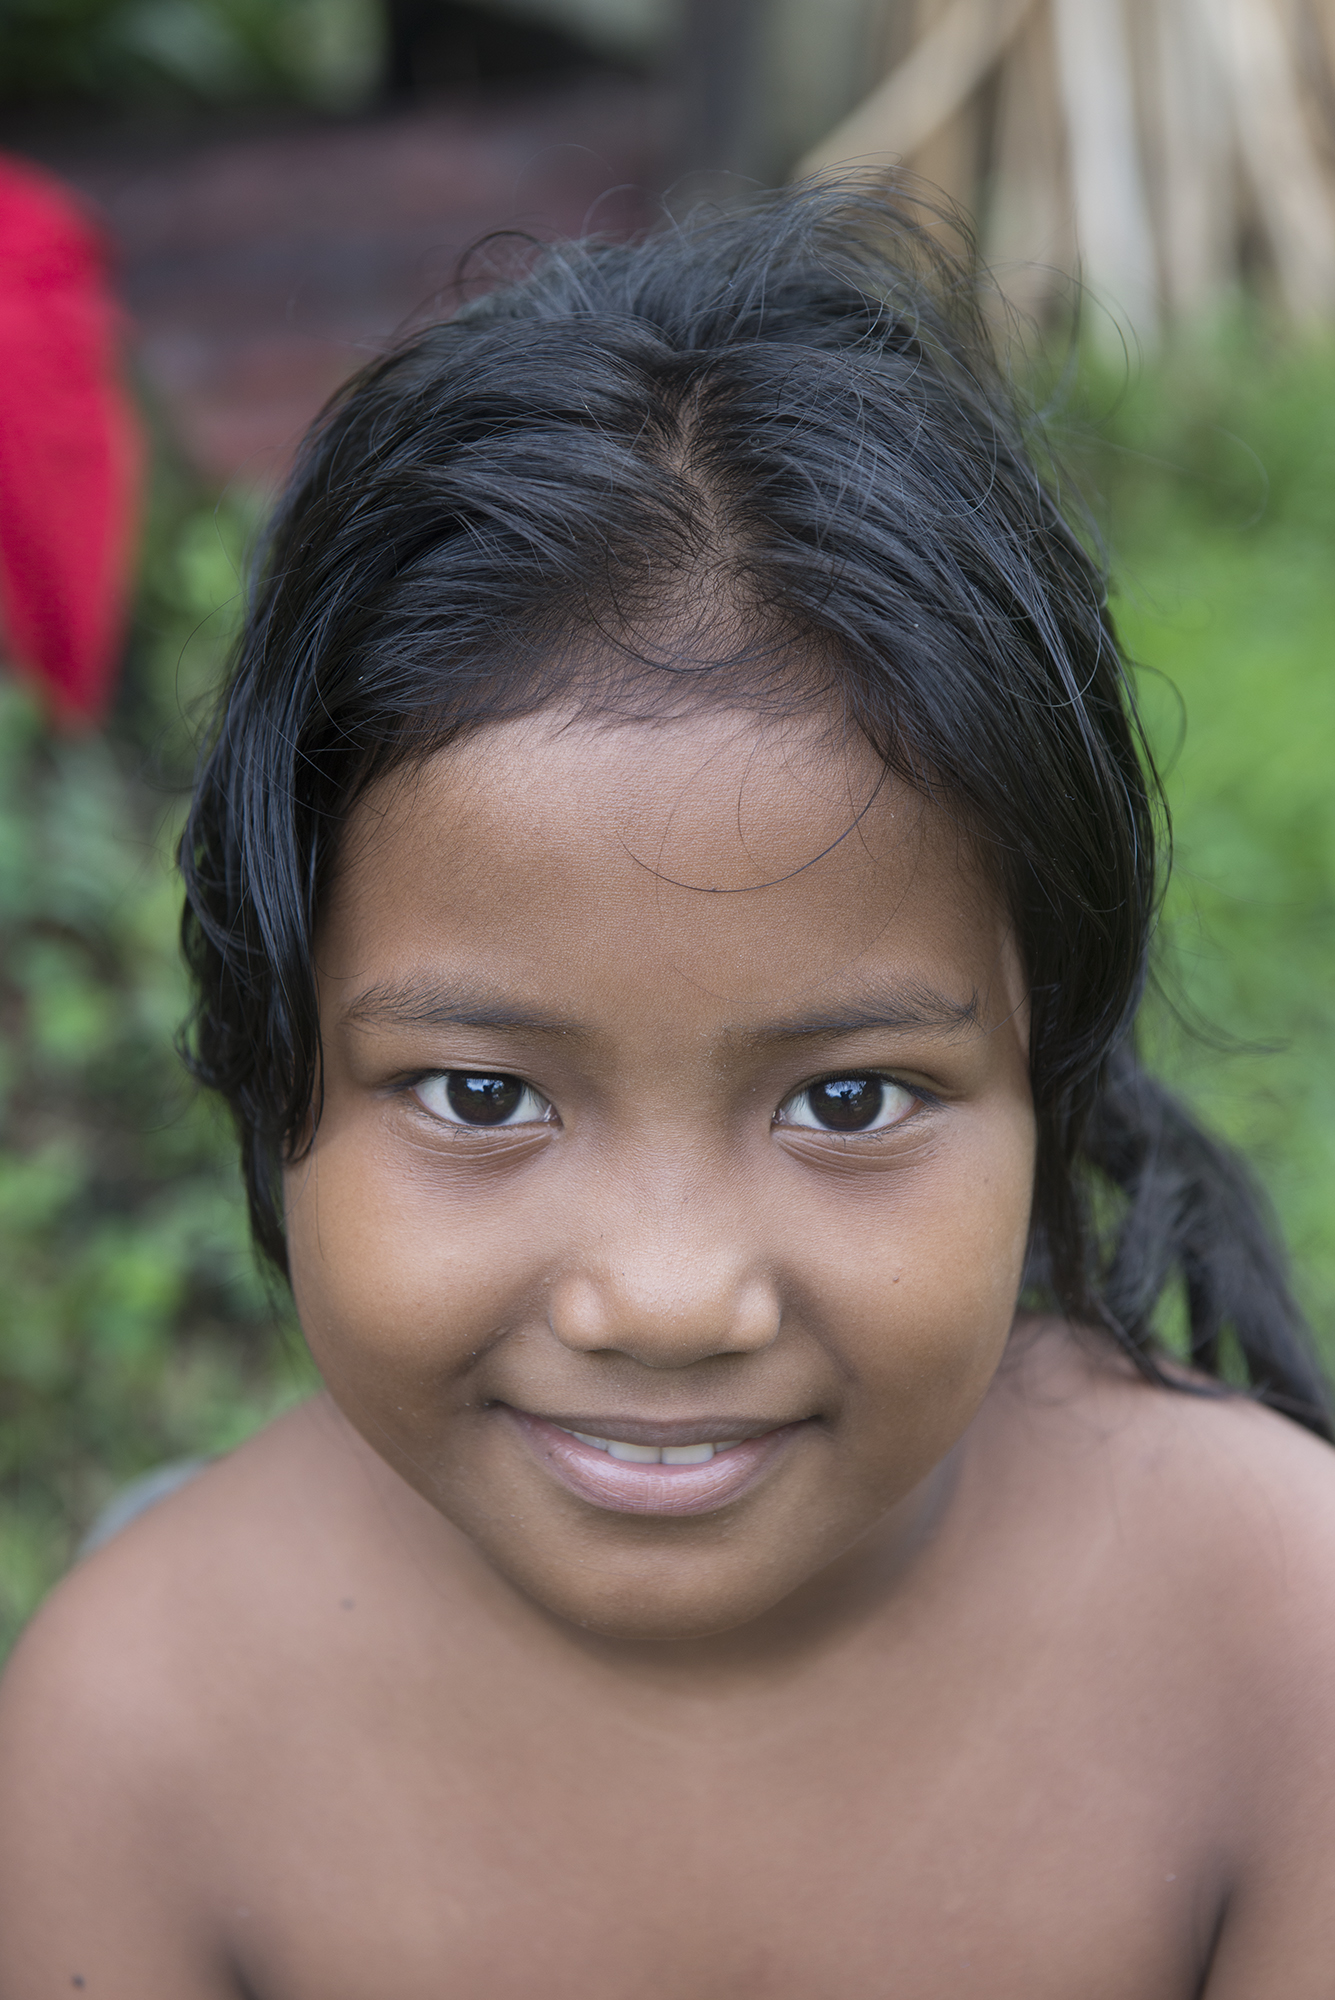 <p>This girl's family is from Chuuk. Her family patriarch, Sam Saul, moved to Pohnpei as a young man after a storm devastated hishome island.</p>